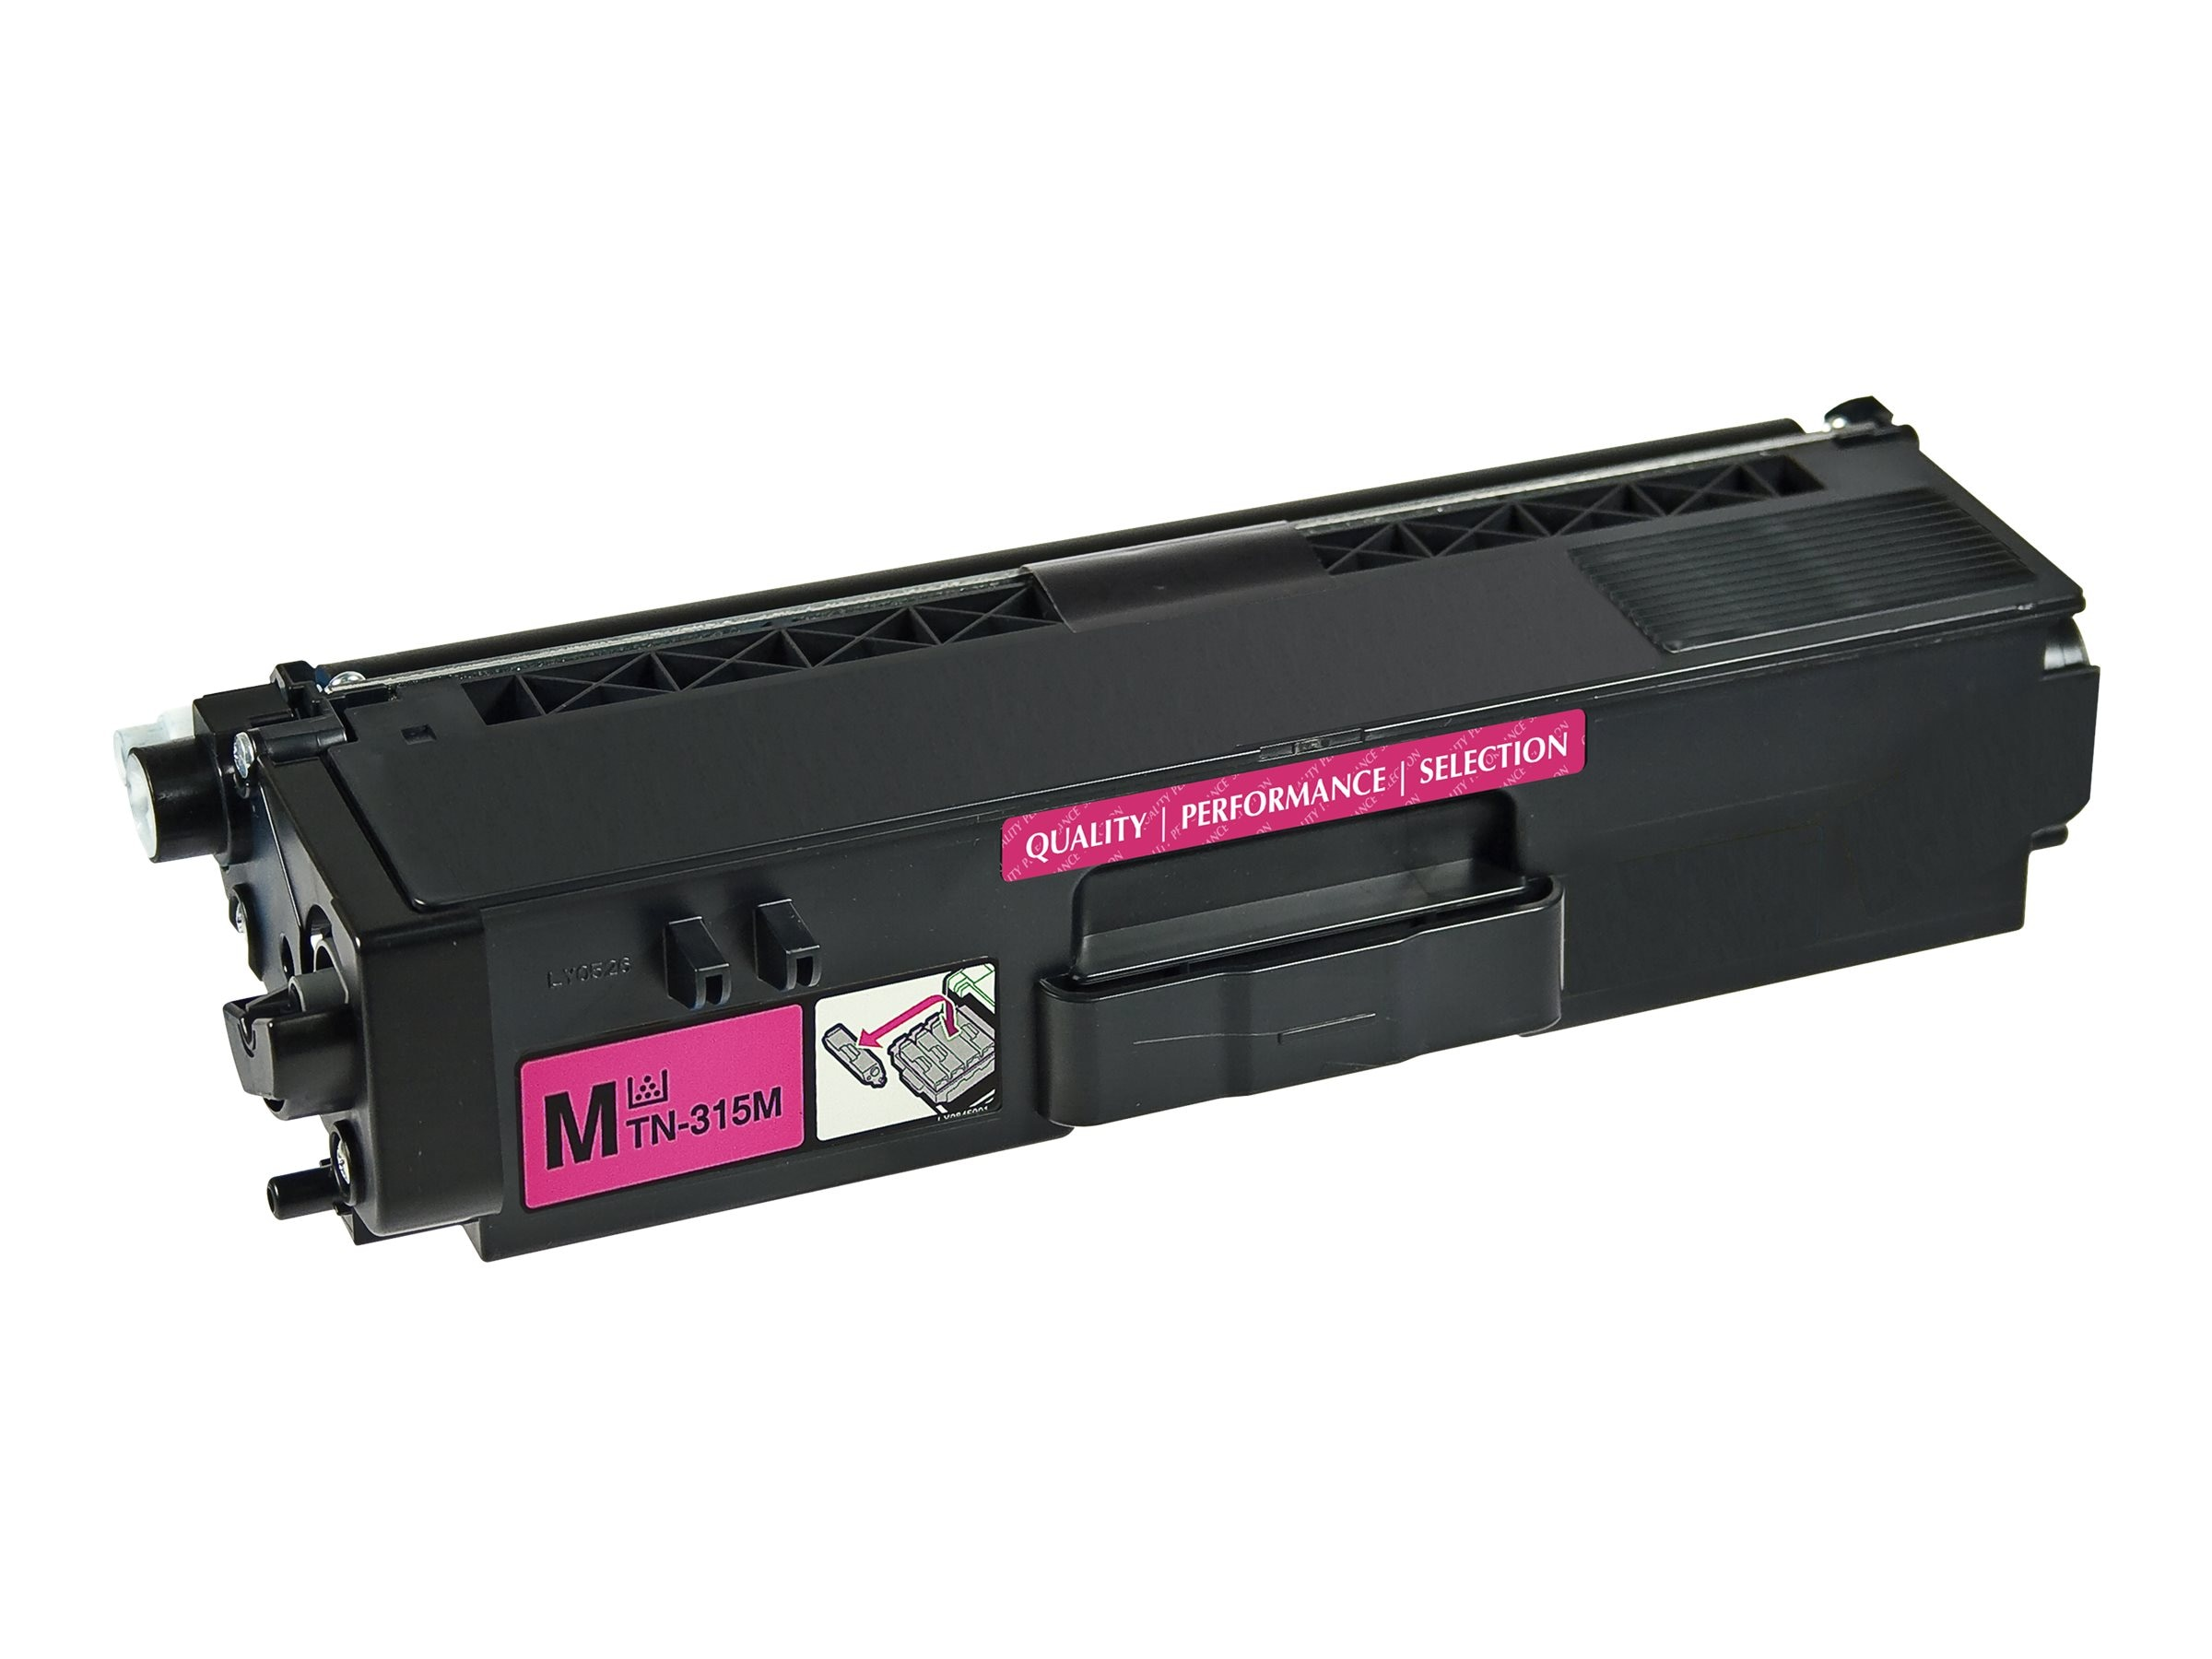 V7 Magenta TN315M High Yield Toner Cartridge, V7TN315M